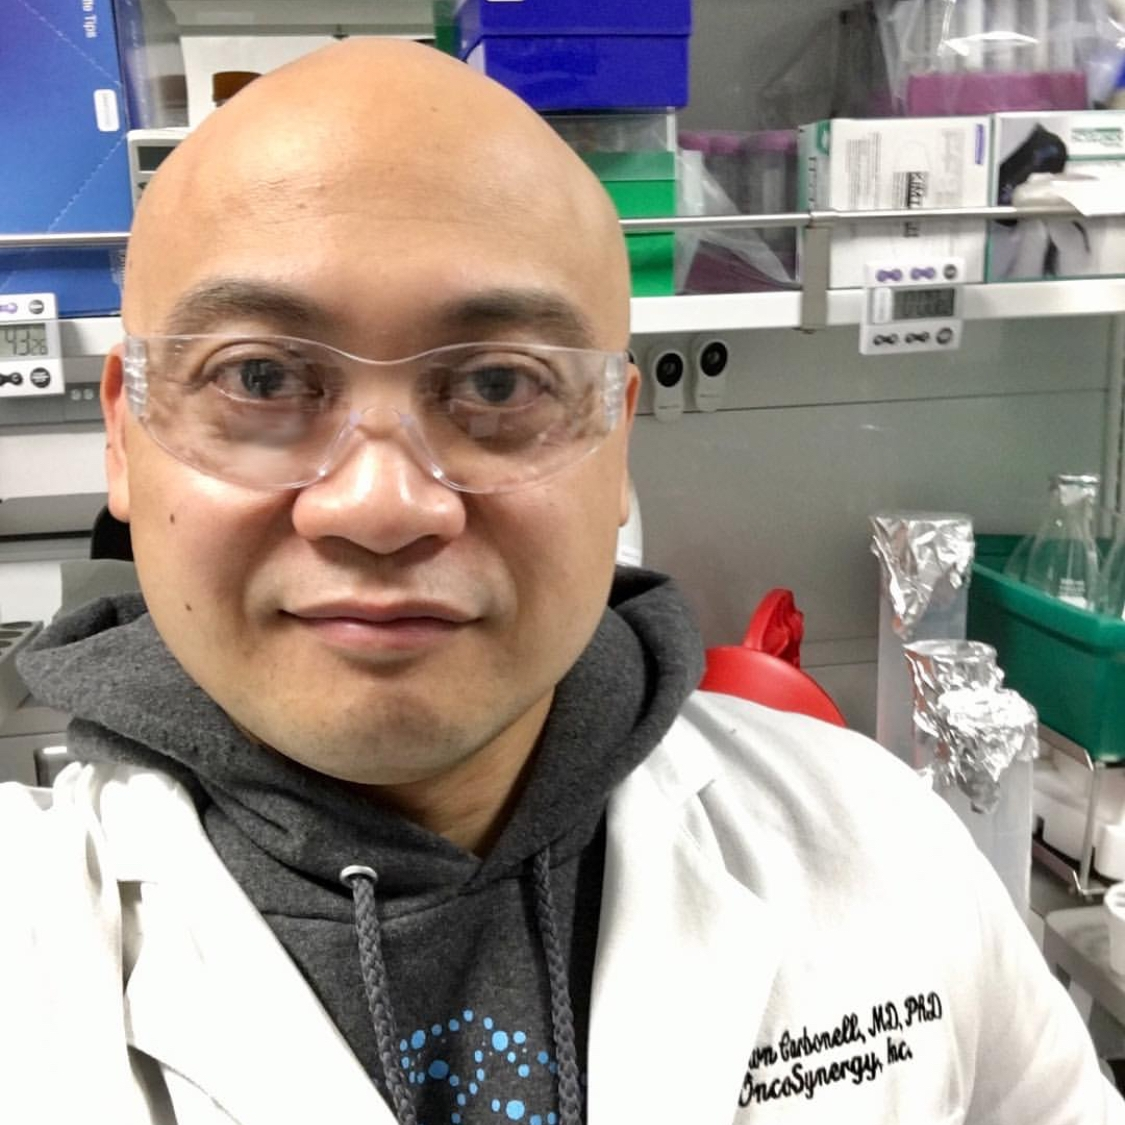 Shawn Carbonell  @brainsurgerydropout Specialty: Neuroscience/Biotechnology